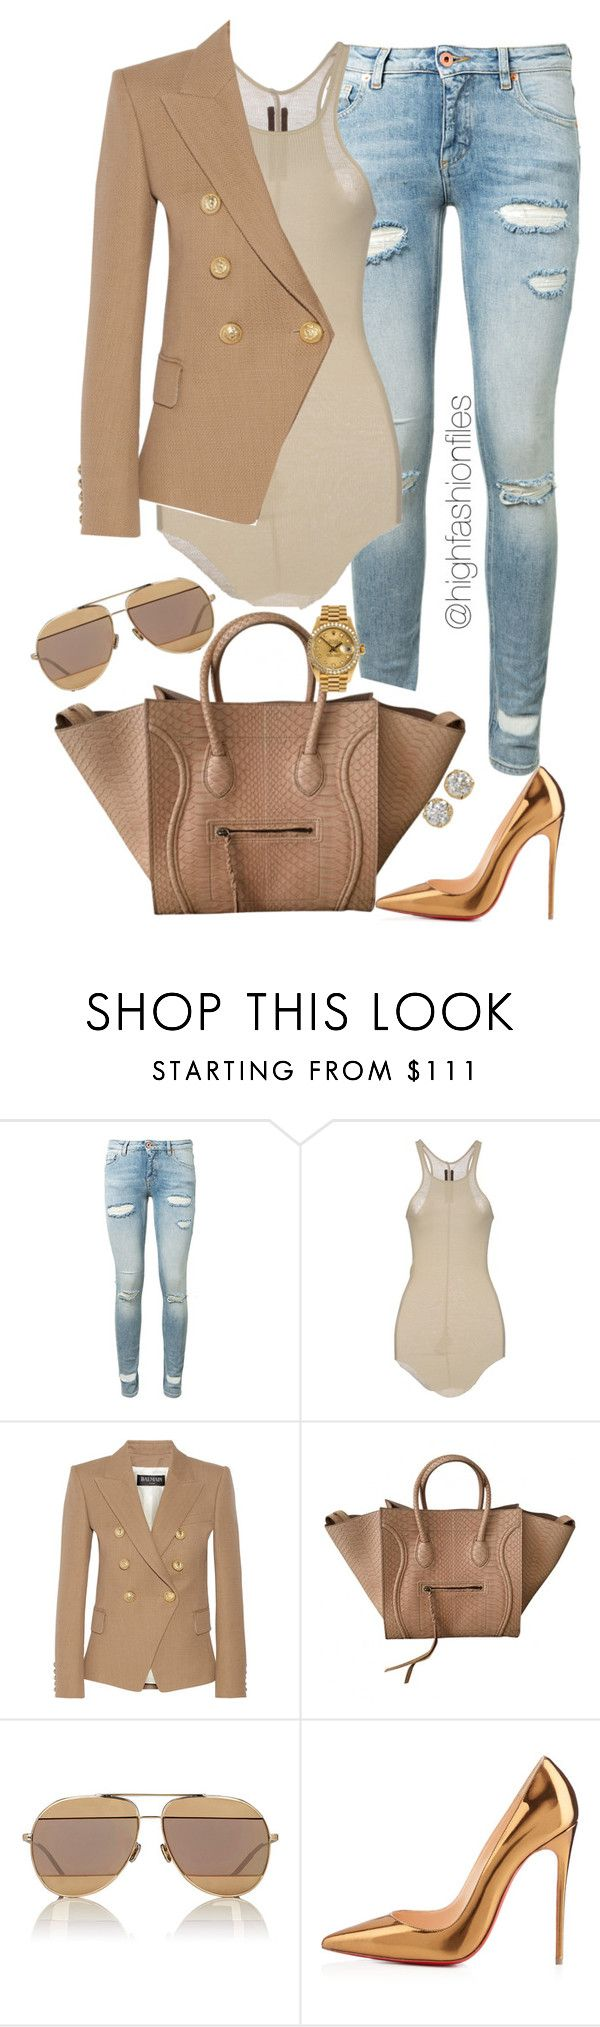 """""""Like Clock Work"""" by highfashionfiles ❤ liked on Polyvore featuring Off-White, Rick Owens, Balmain, Christian Dior, Christian Louboutin, Rolex and Hoorsenbuhs"""